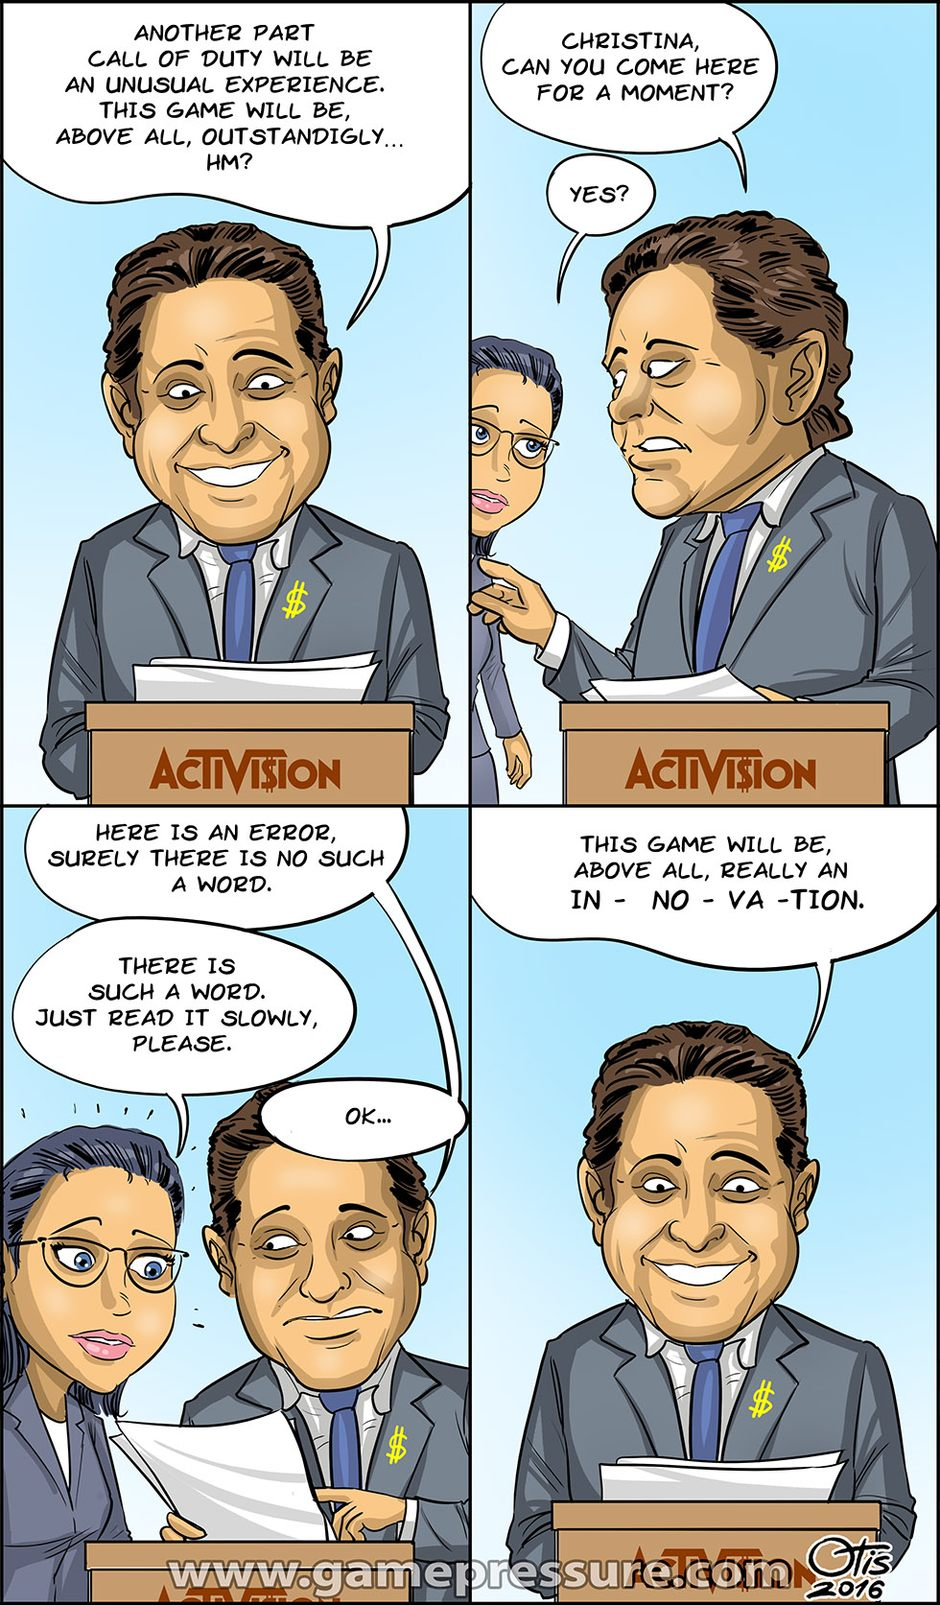 Call of Duty: Innovation, comics Cartoon Games, #170. It's a difficult word for Activision.